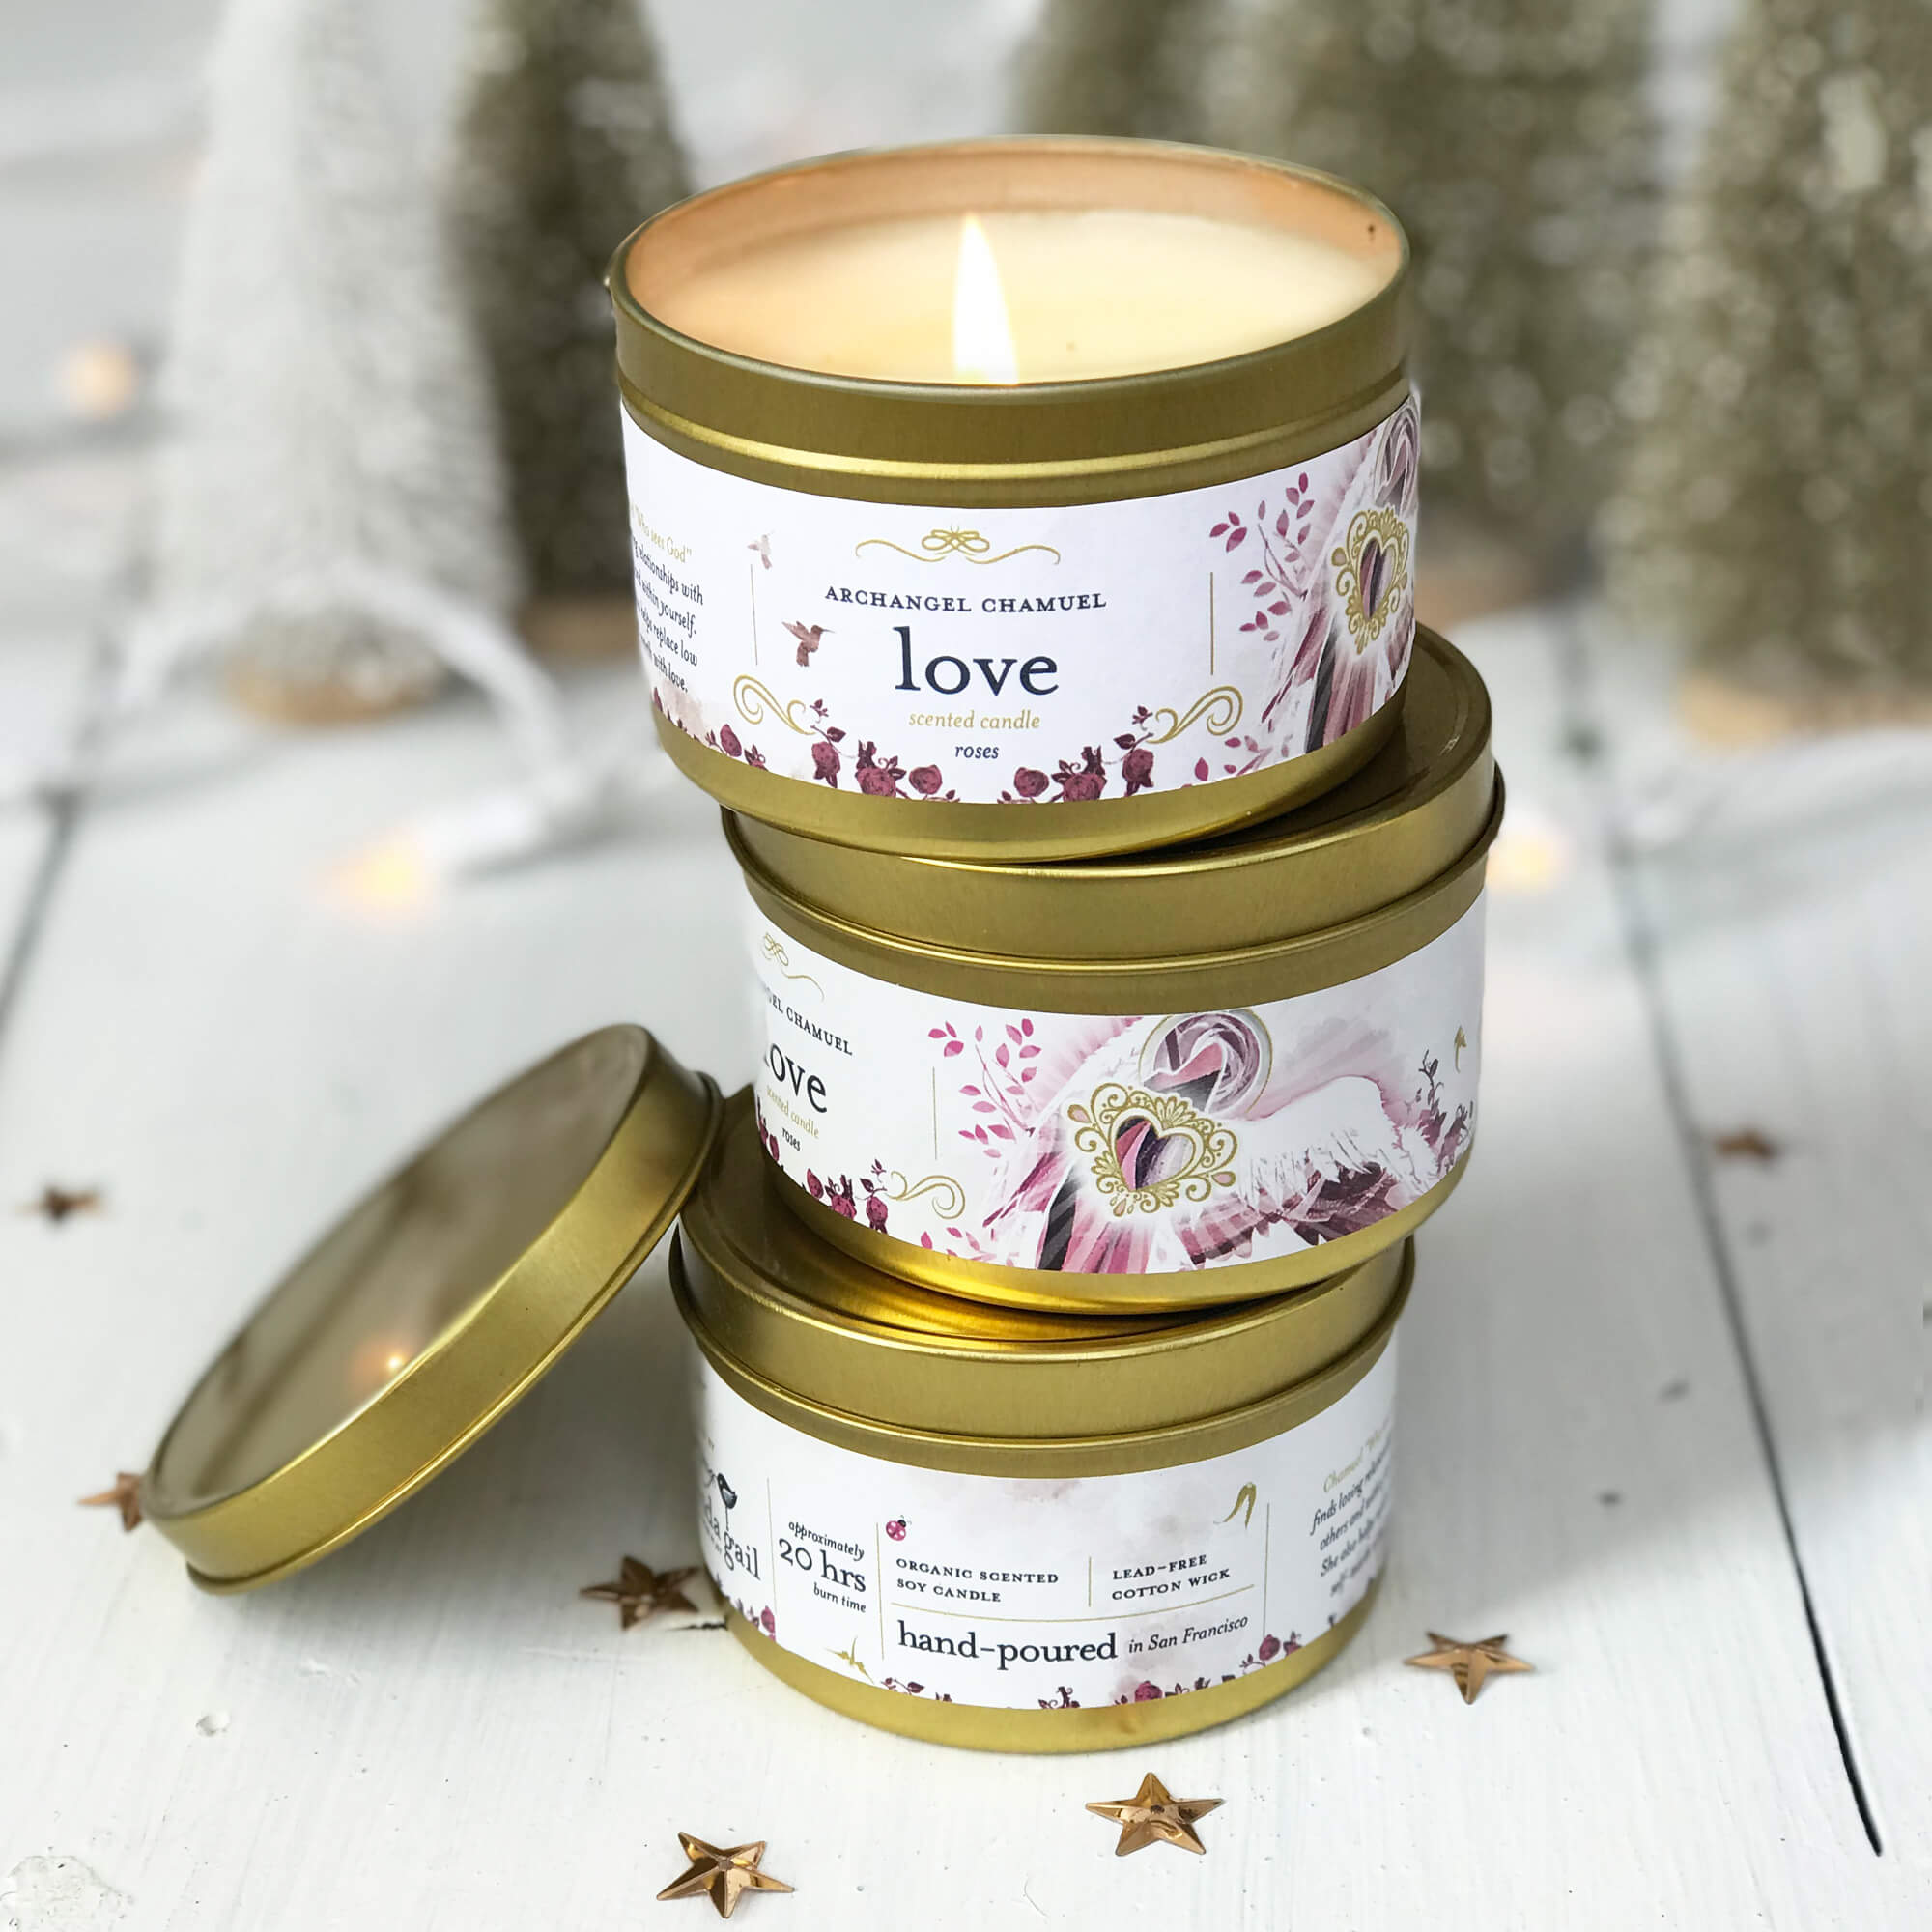 'Love' angel soy candle - $12